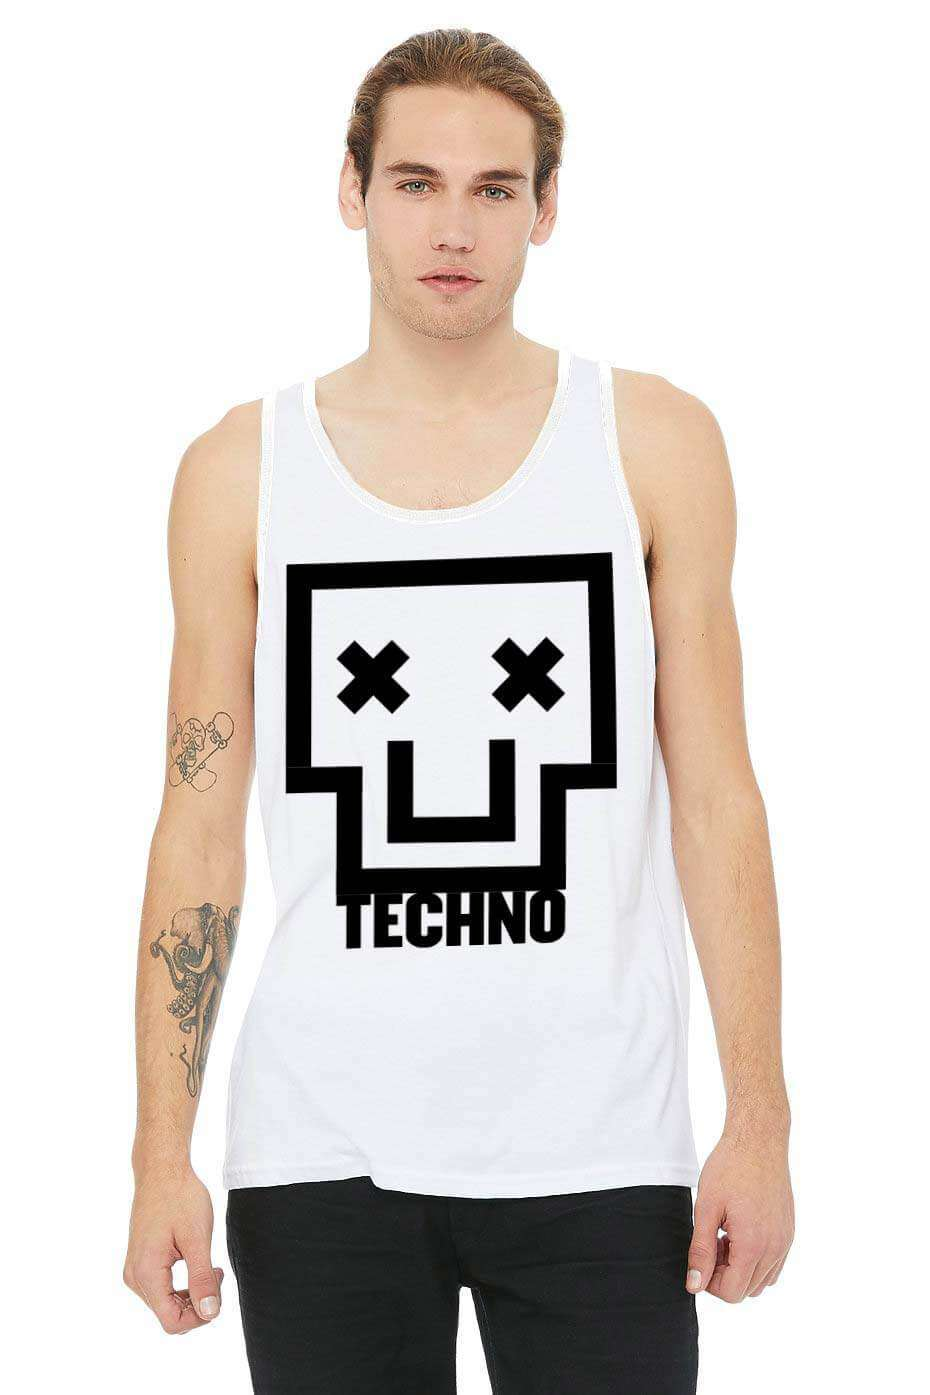 Techno Skull Tank Top